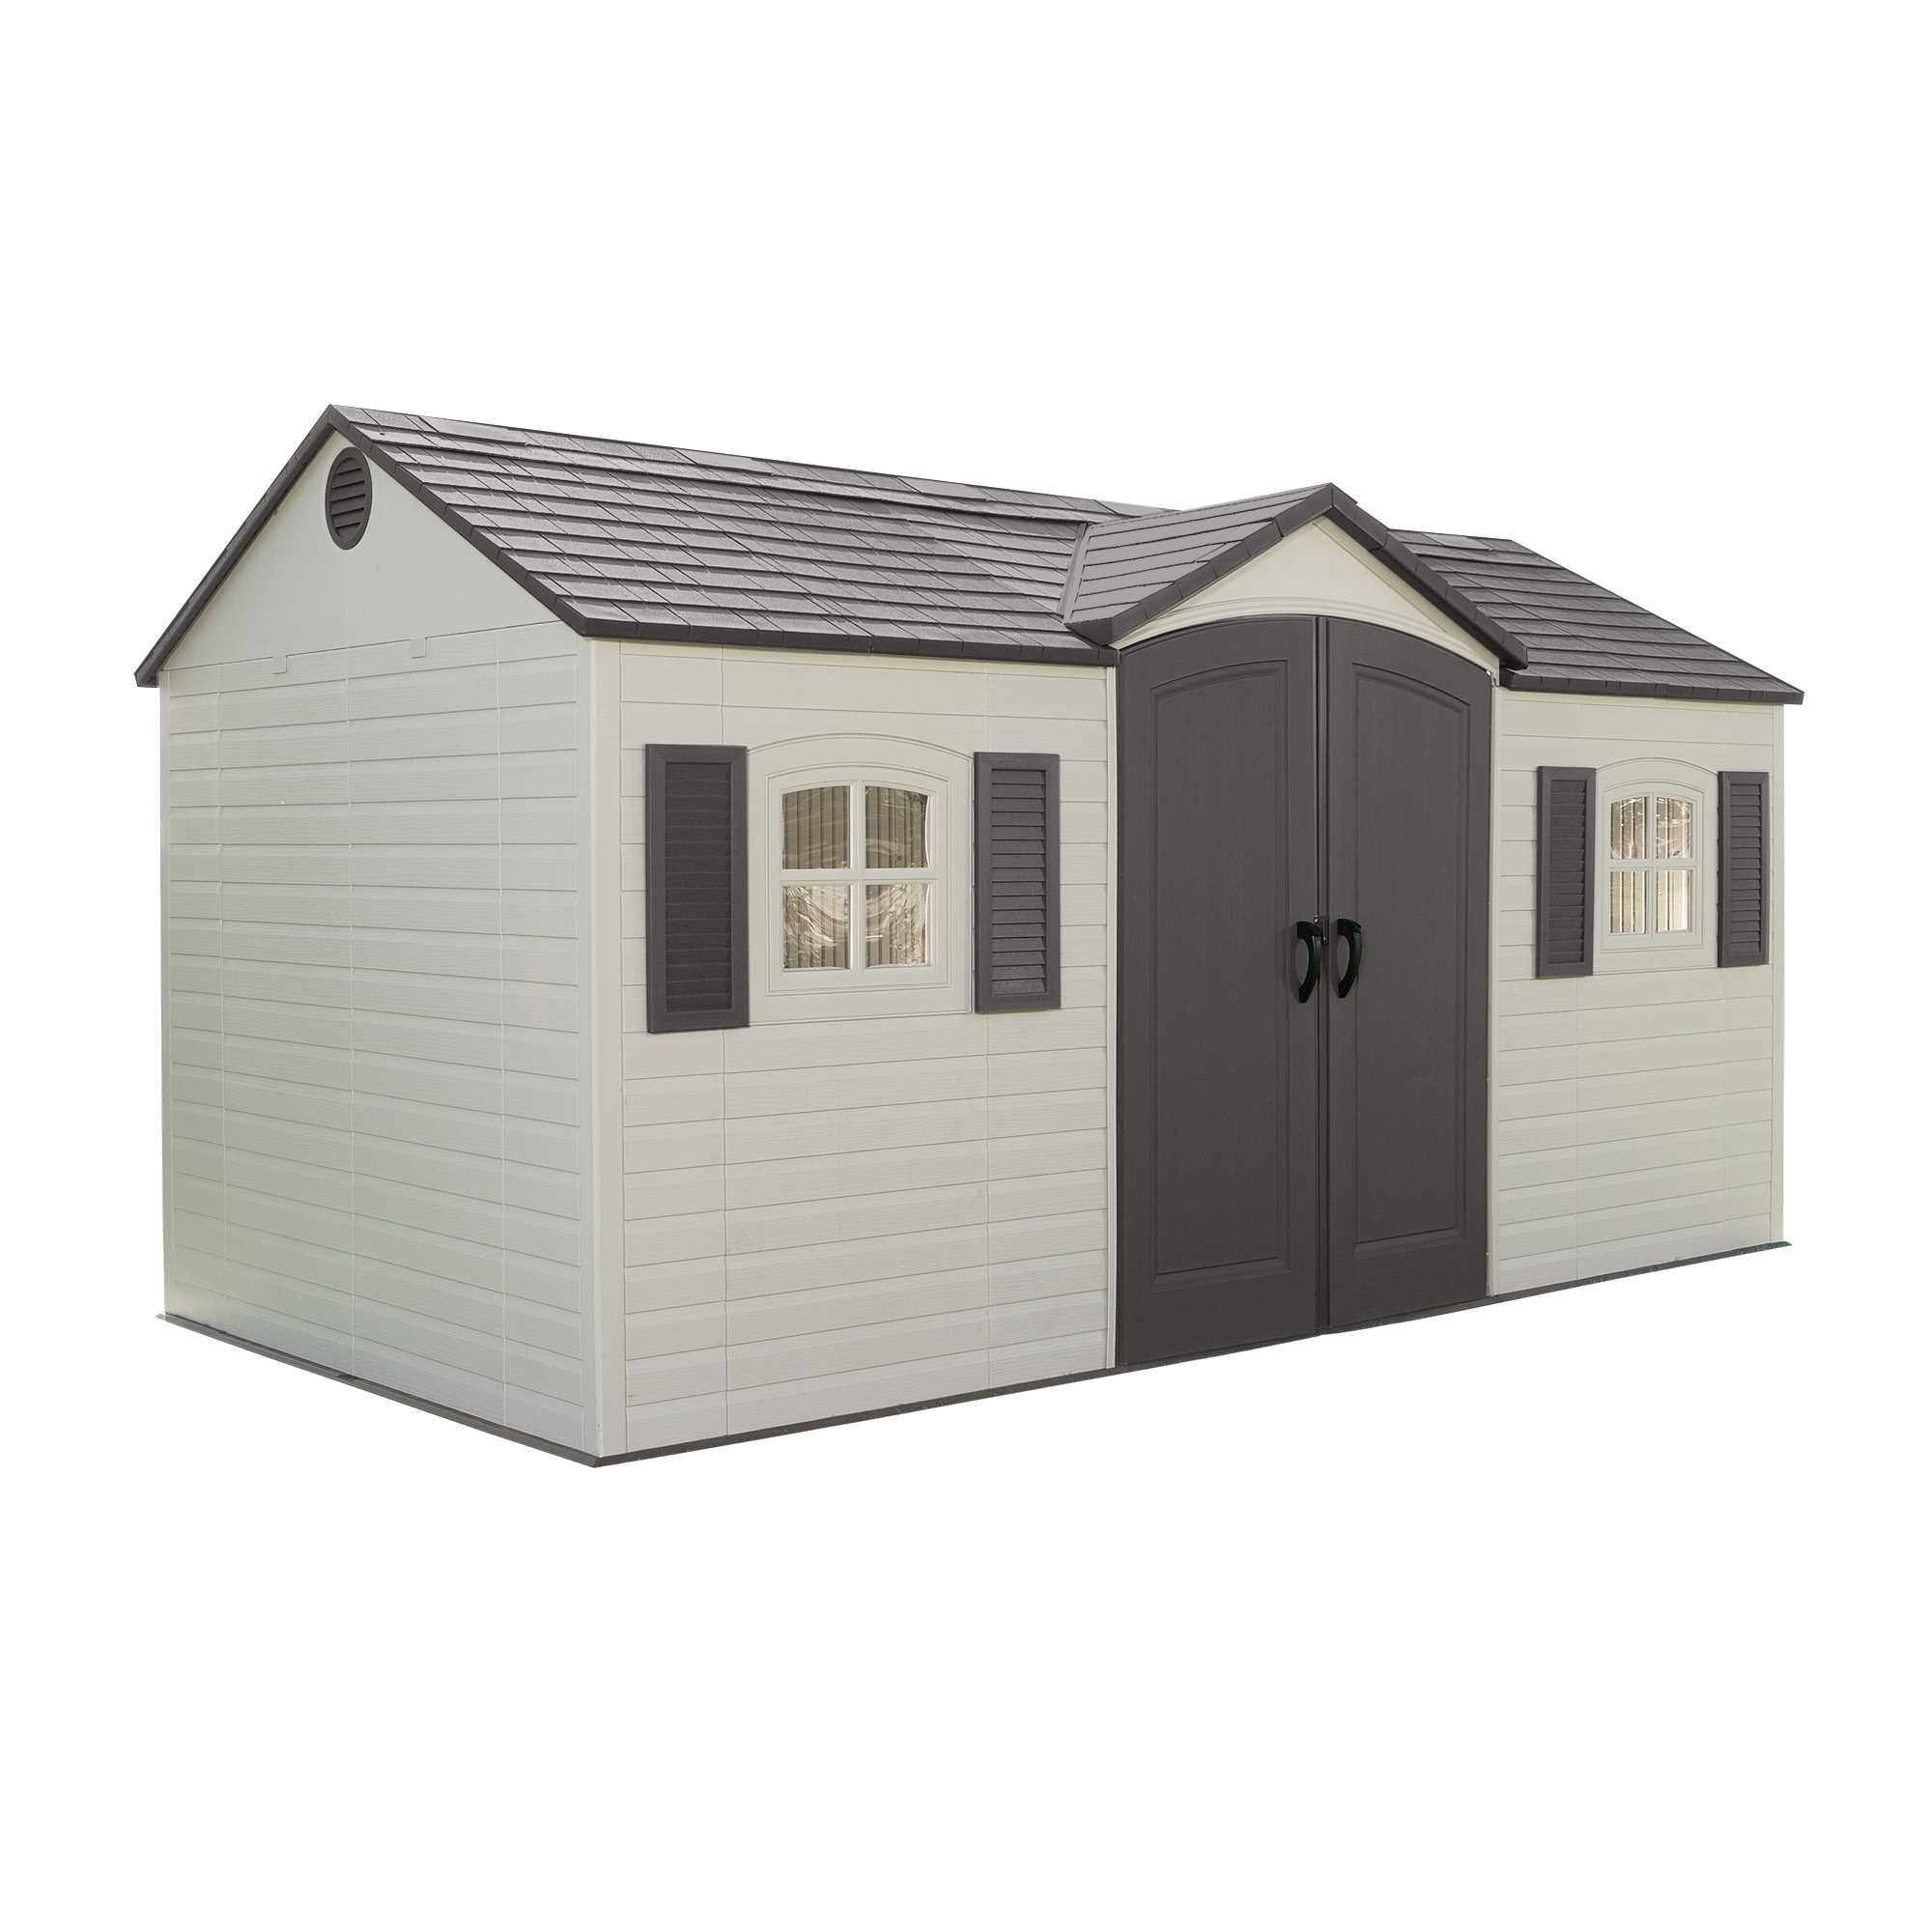 Lifetime 15x8 Single Entrance Plastic Shed